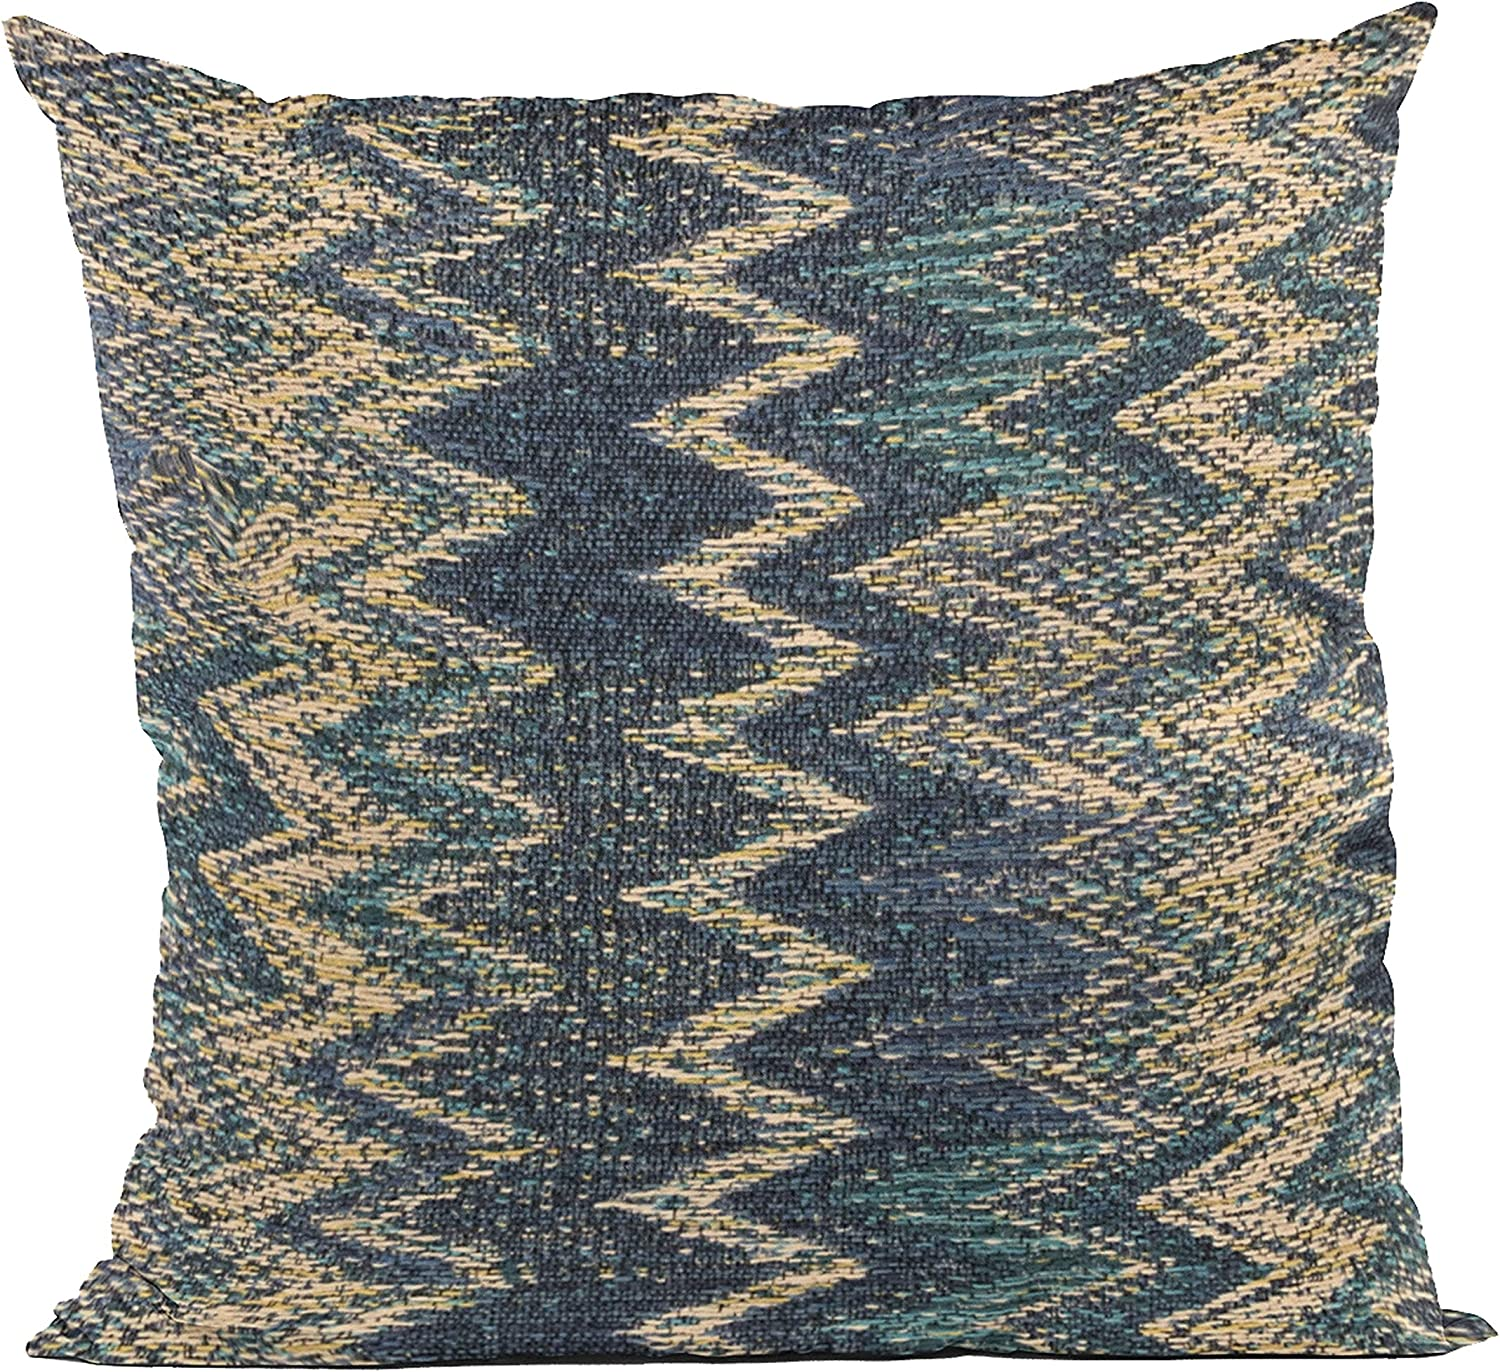 Plutus Brands Blue Wave Chevron 12 SEAL limited product in famous Throw Luxury Pillow